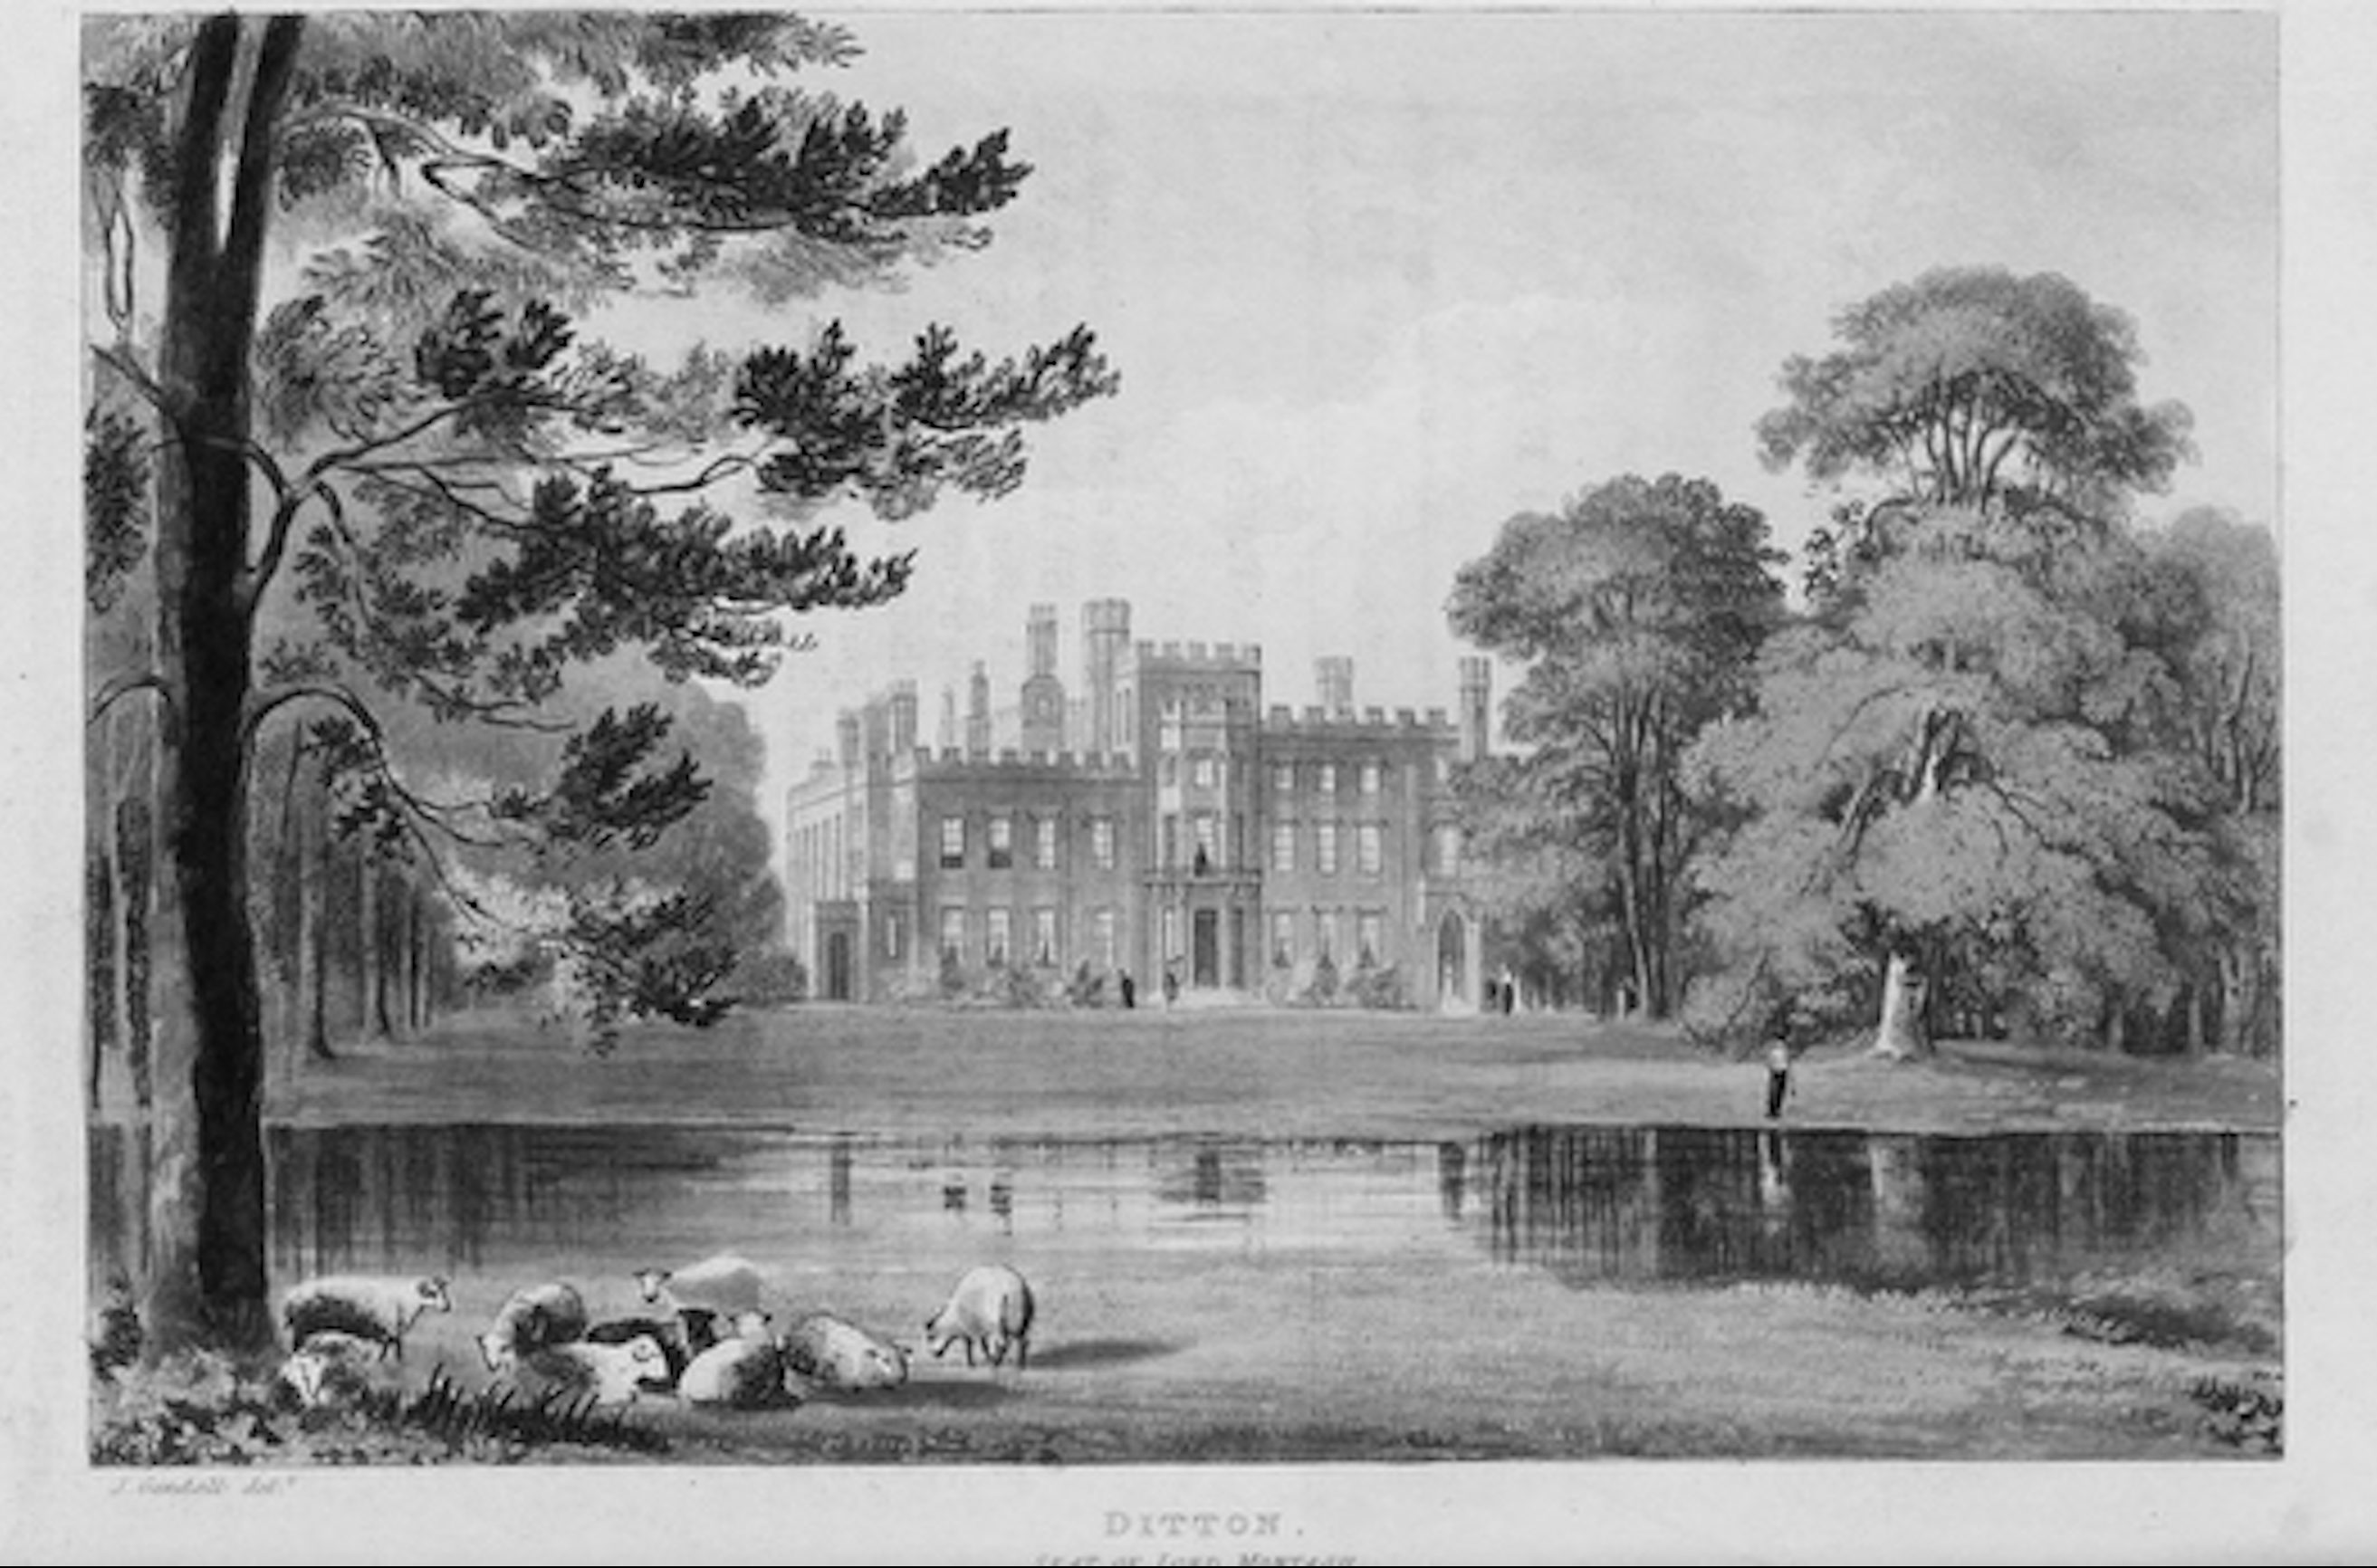 Vintage photograph of a stately home in the countryside